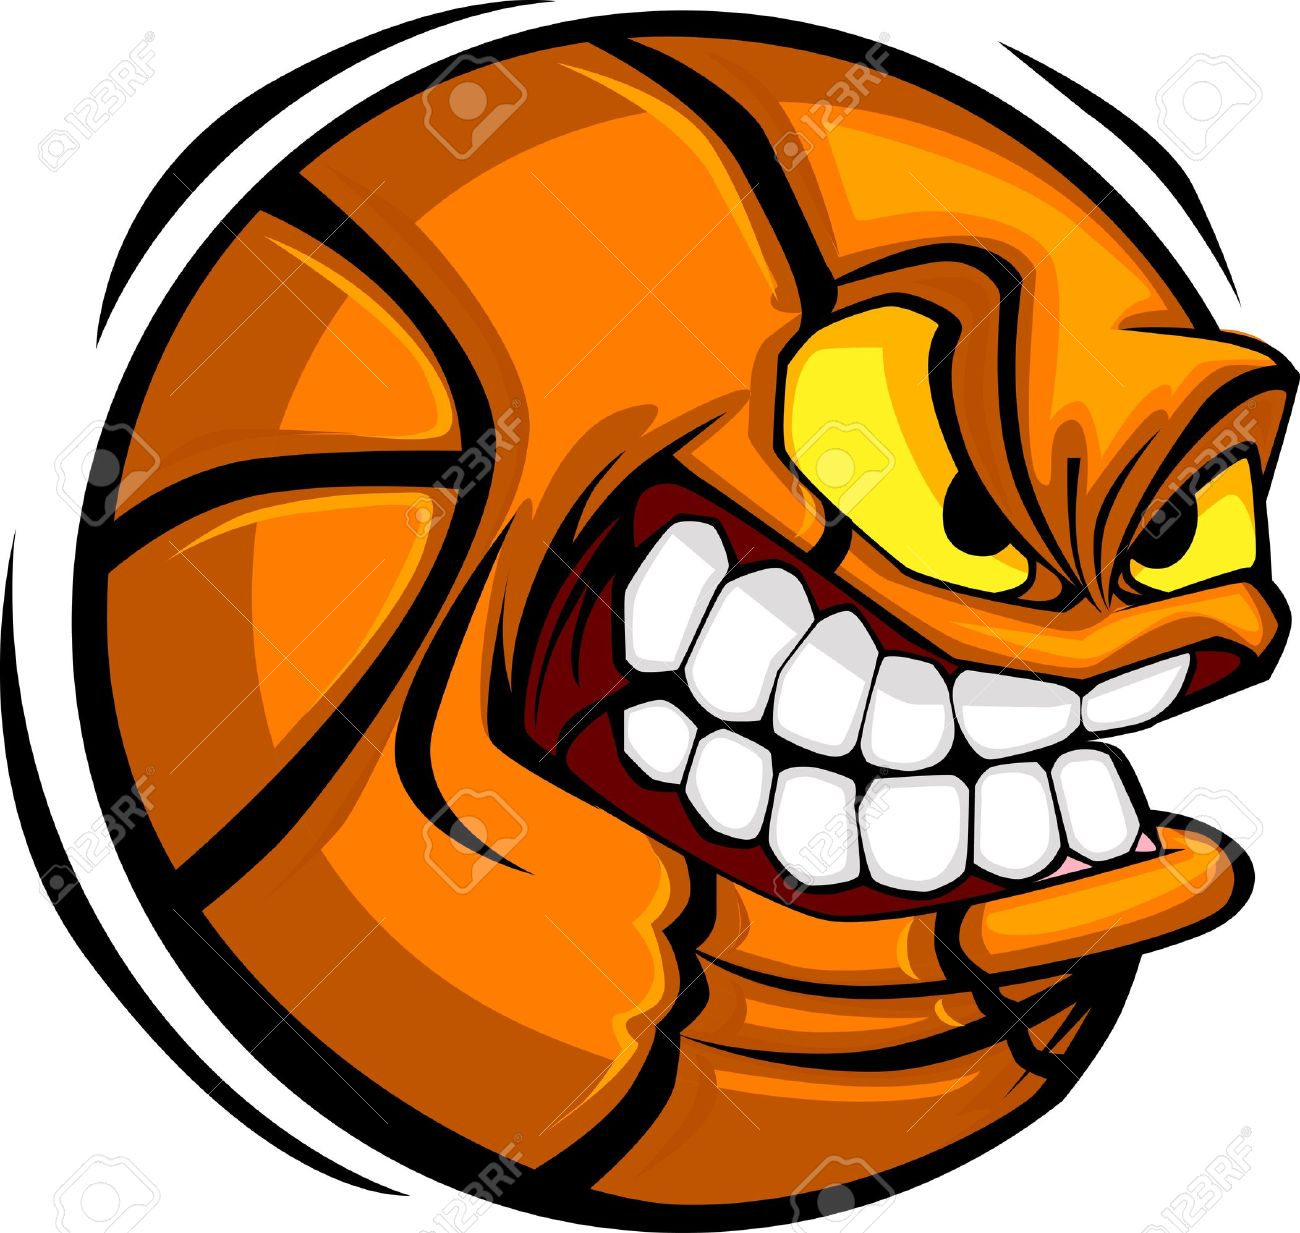 cartoon basketball with mean face royalty free cliparts vectors